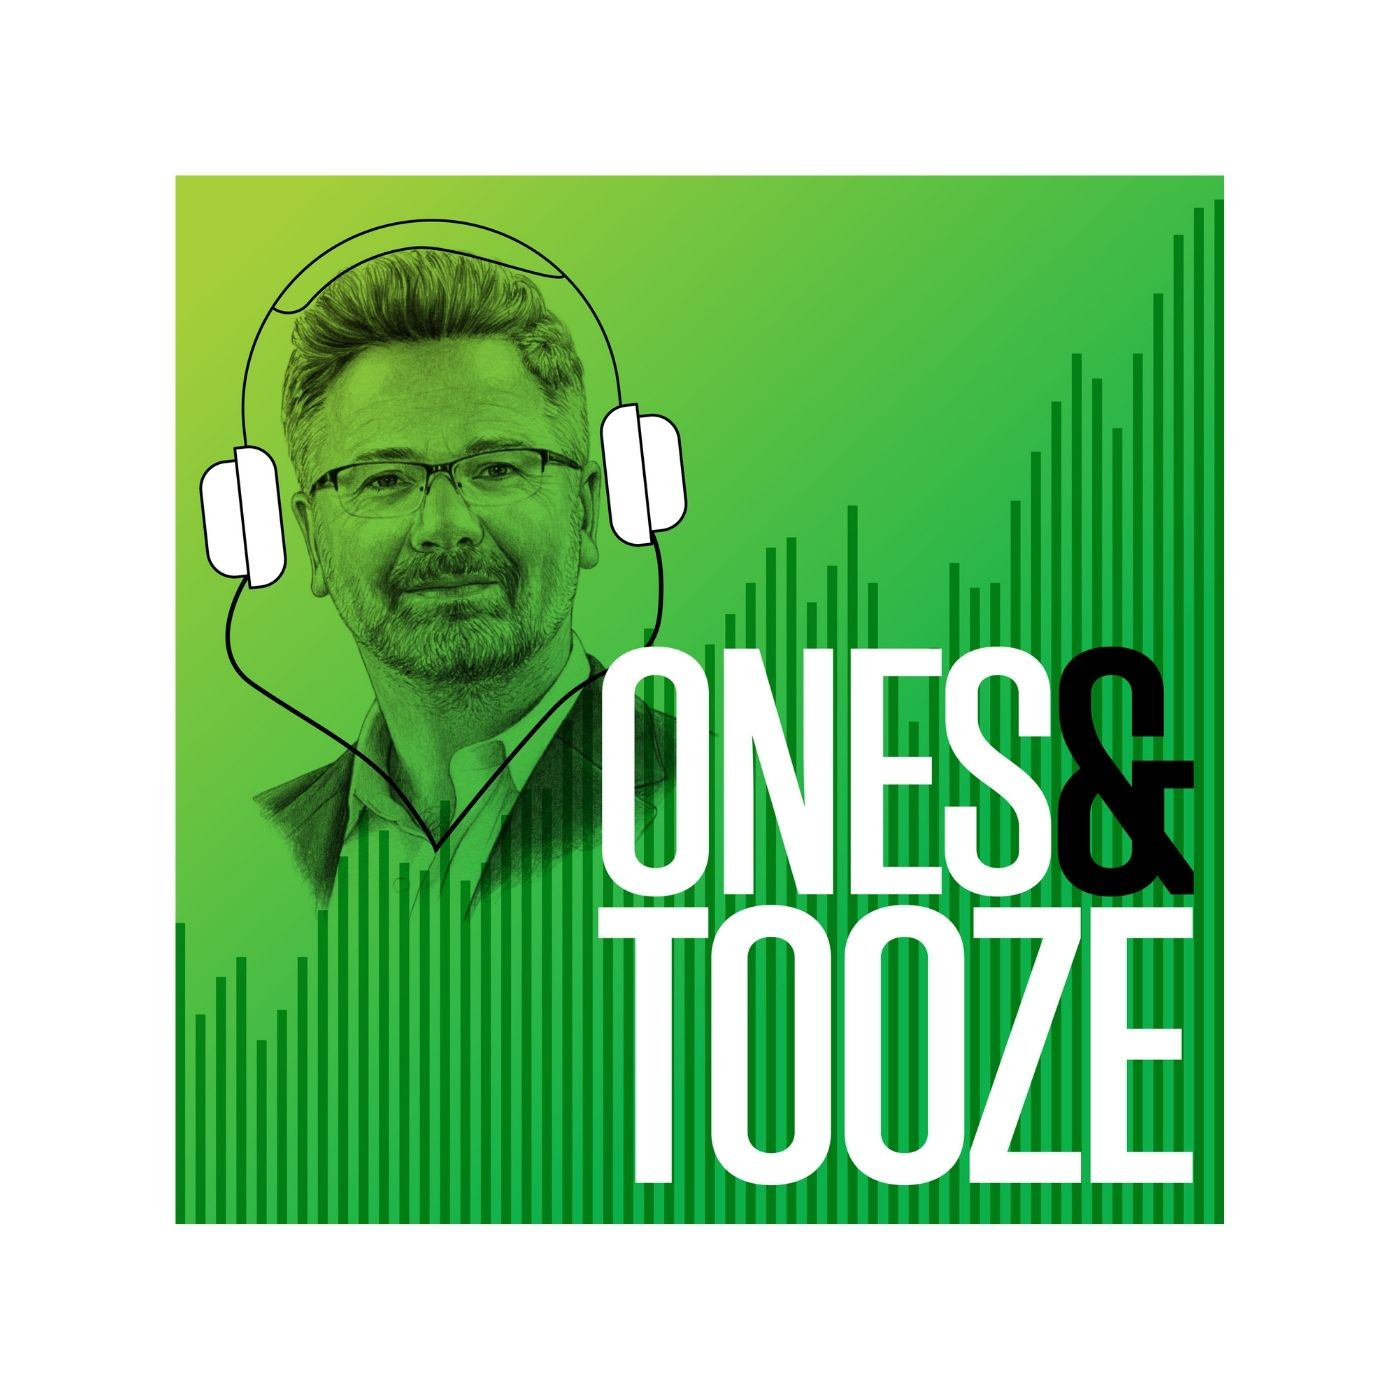 Coming Soon: Ones and Tooze, with Adam Tooze